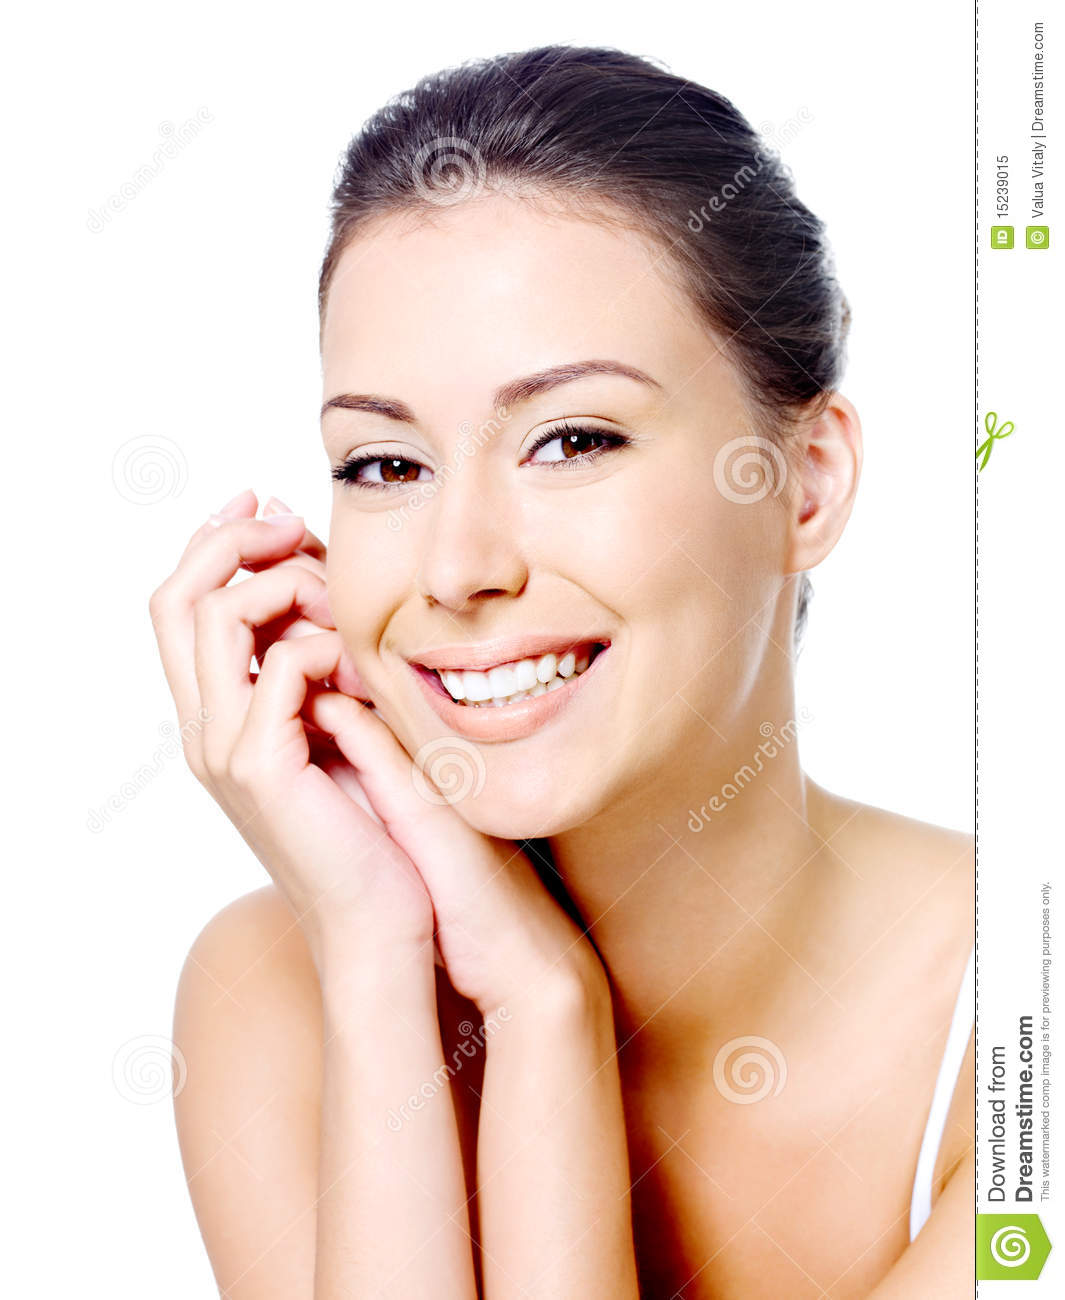 happy-woman-s-face-clean-skin-15239015.j